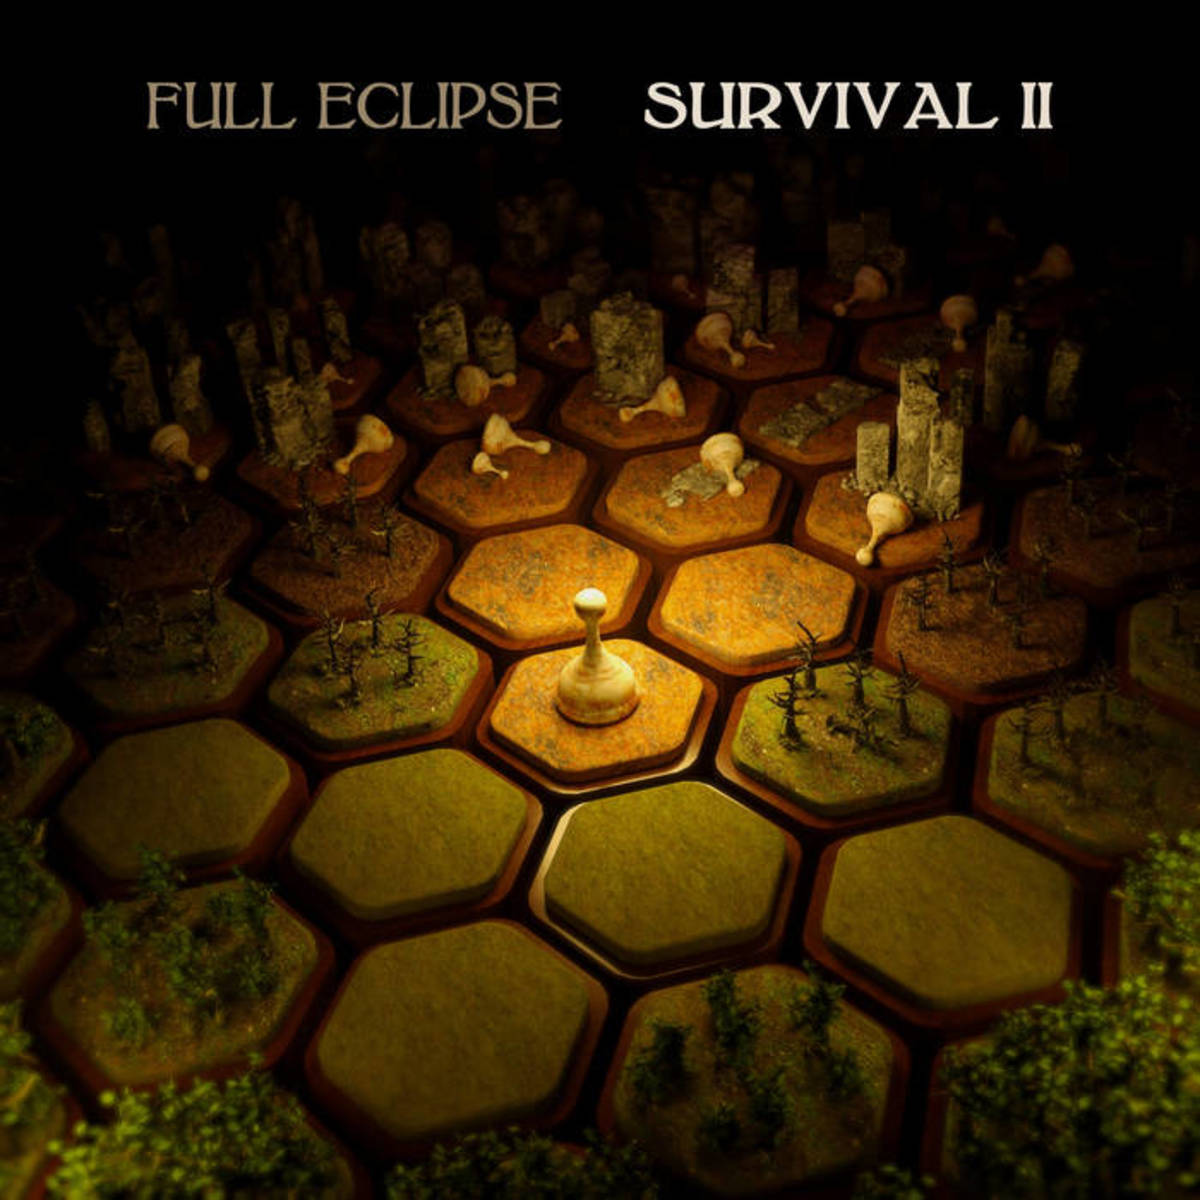 synth-ep-review-survival-ii-by-full-eclipse